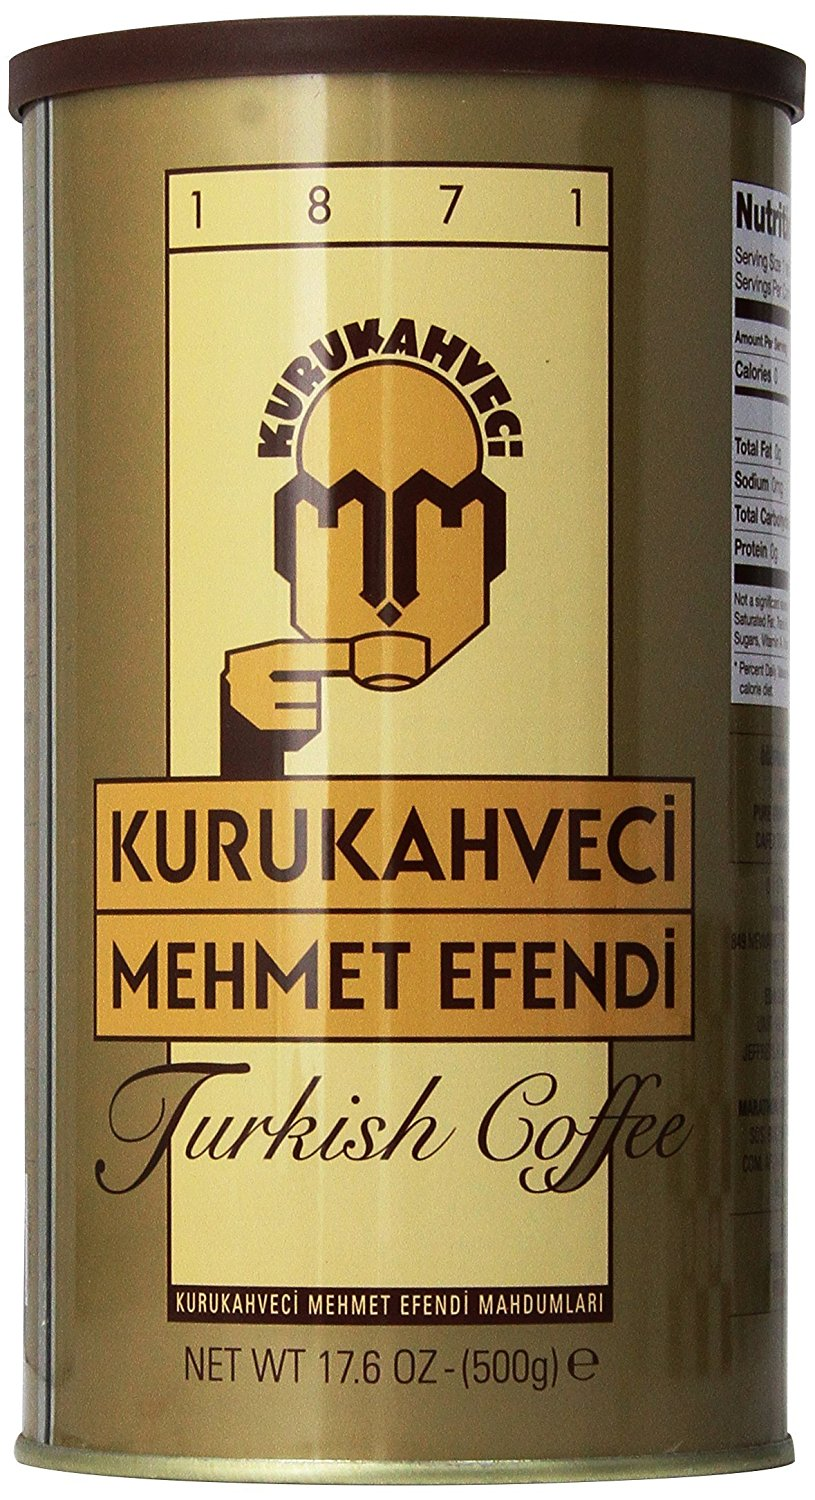 Turkish Coffee - KURUKAHVACI MEHMET EFENDI